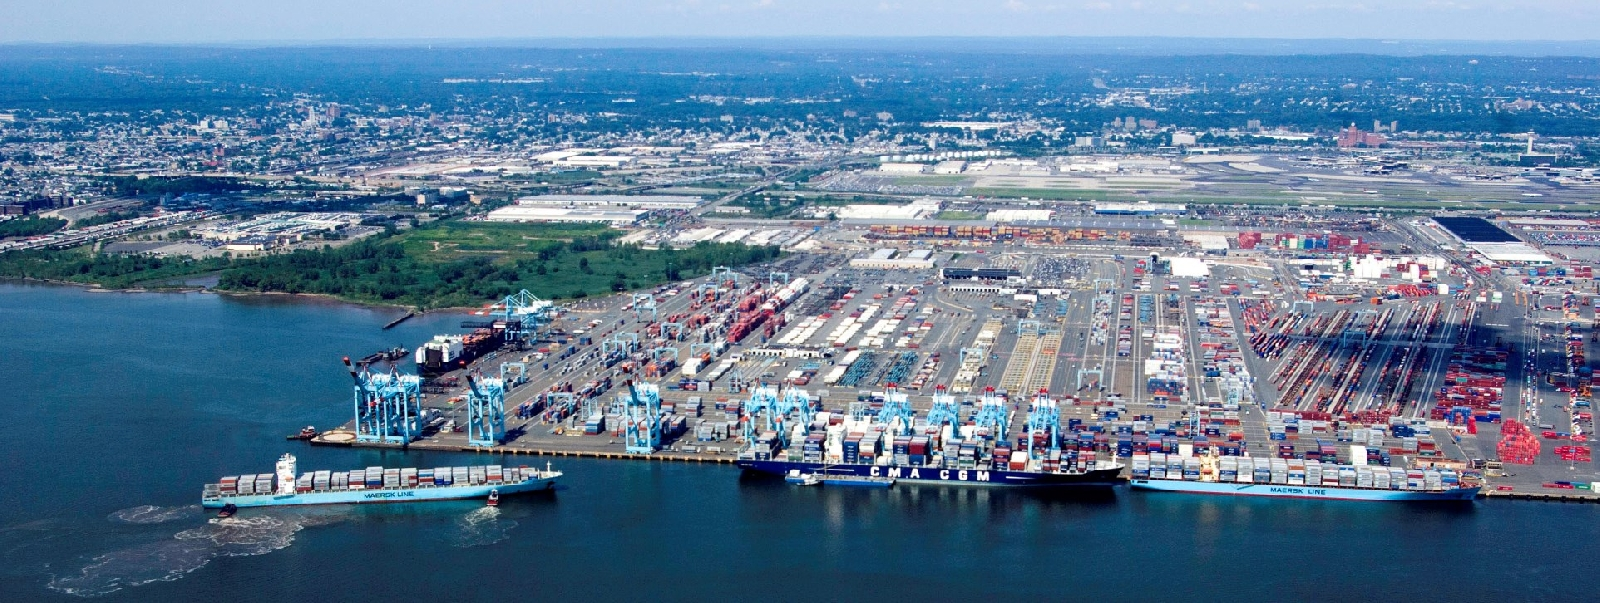 APM Terminals to invest US$70 million to expand New Jersey capacity